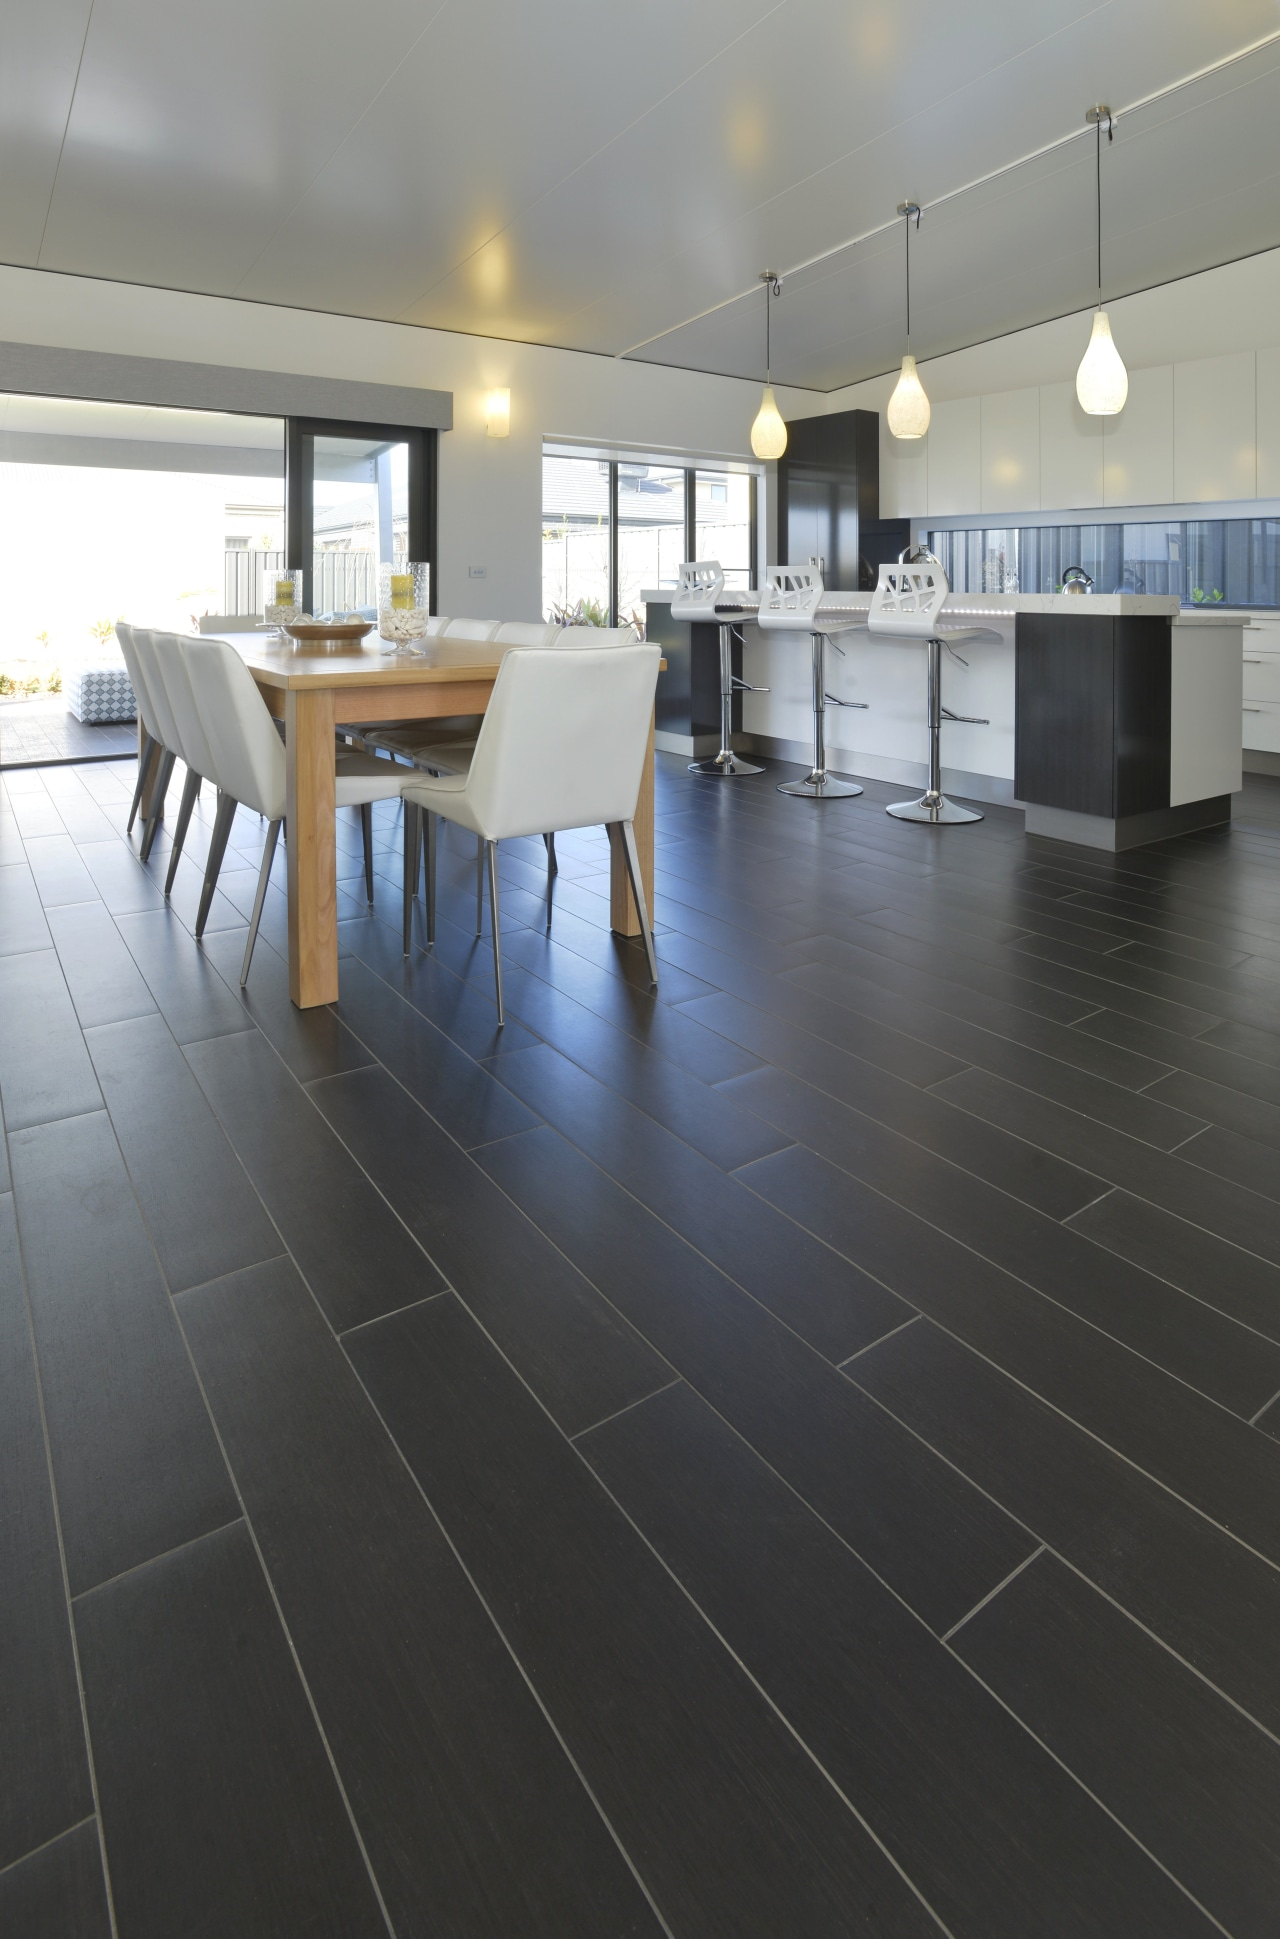 Walk this way  new porcelain tiles from daylighting, floor, flooring, hardwood, interior design, laminate flooring, property, tile, wood, wood flooring, black, gray